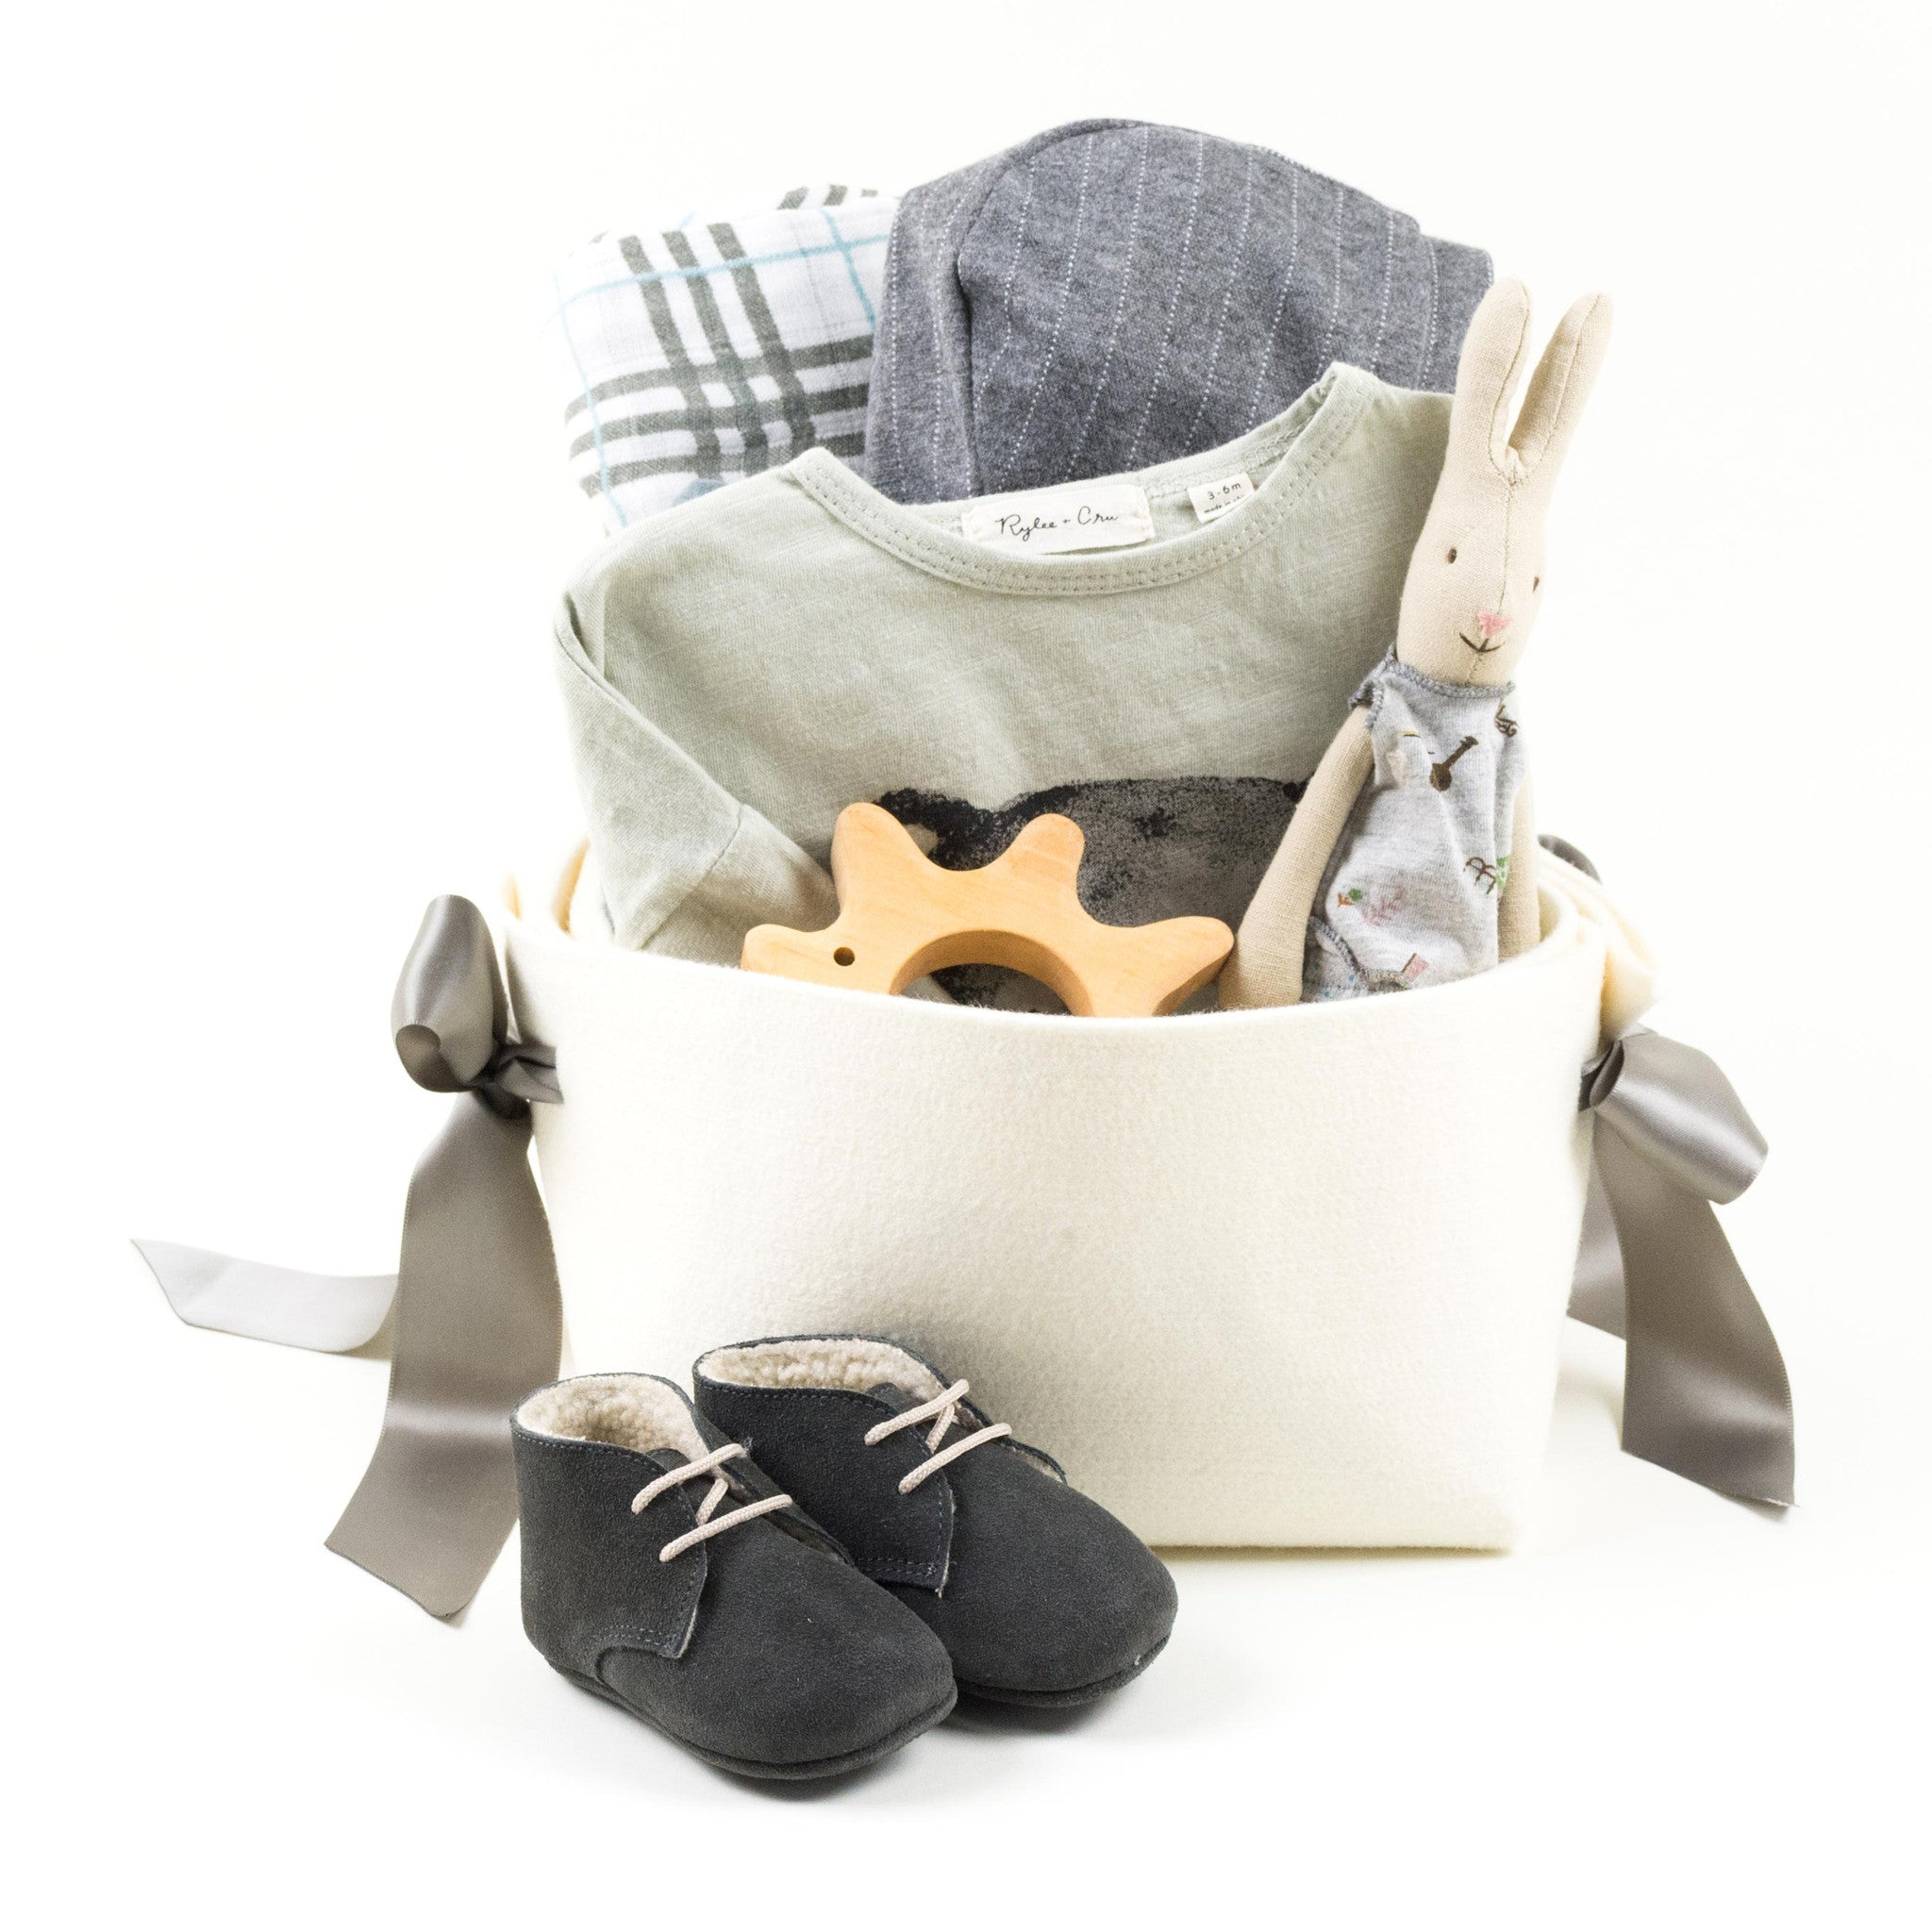 Exclusive Baby Boy Gift Basket featuring Rylee and Cru